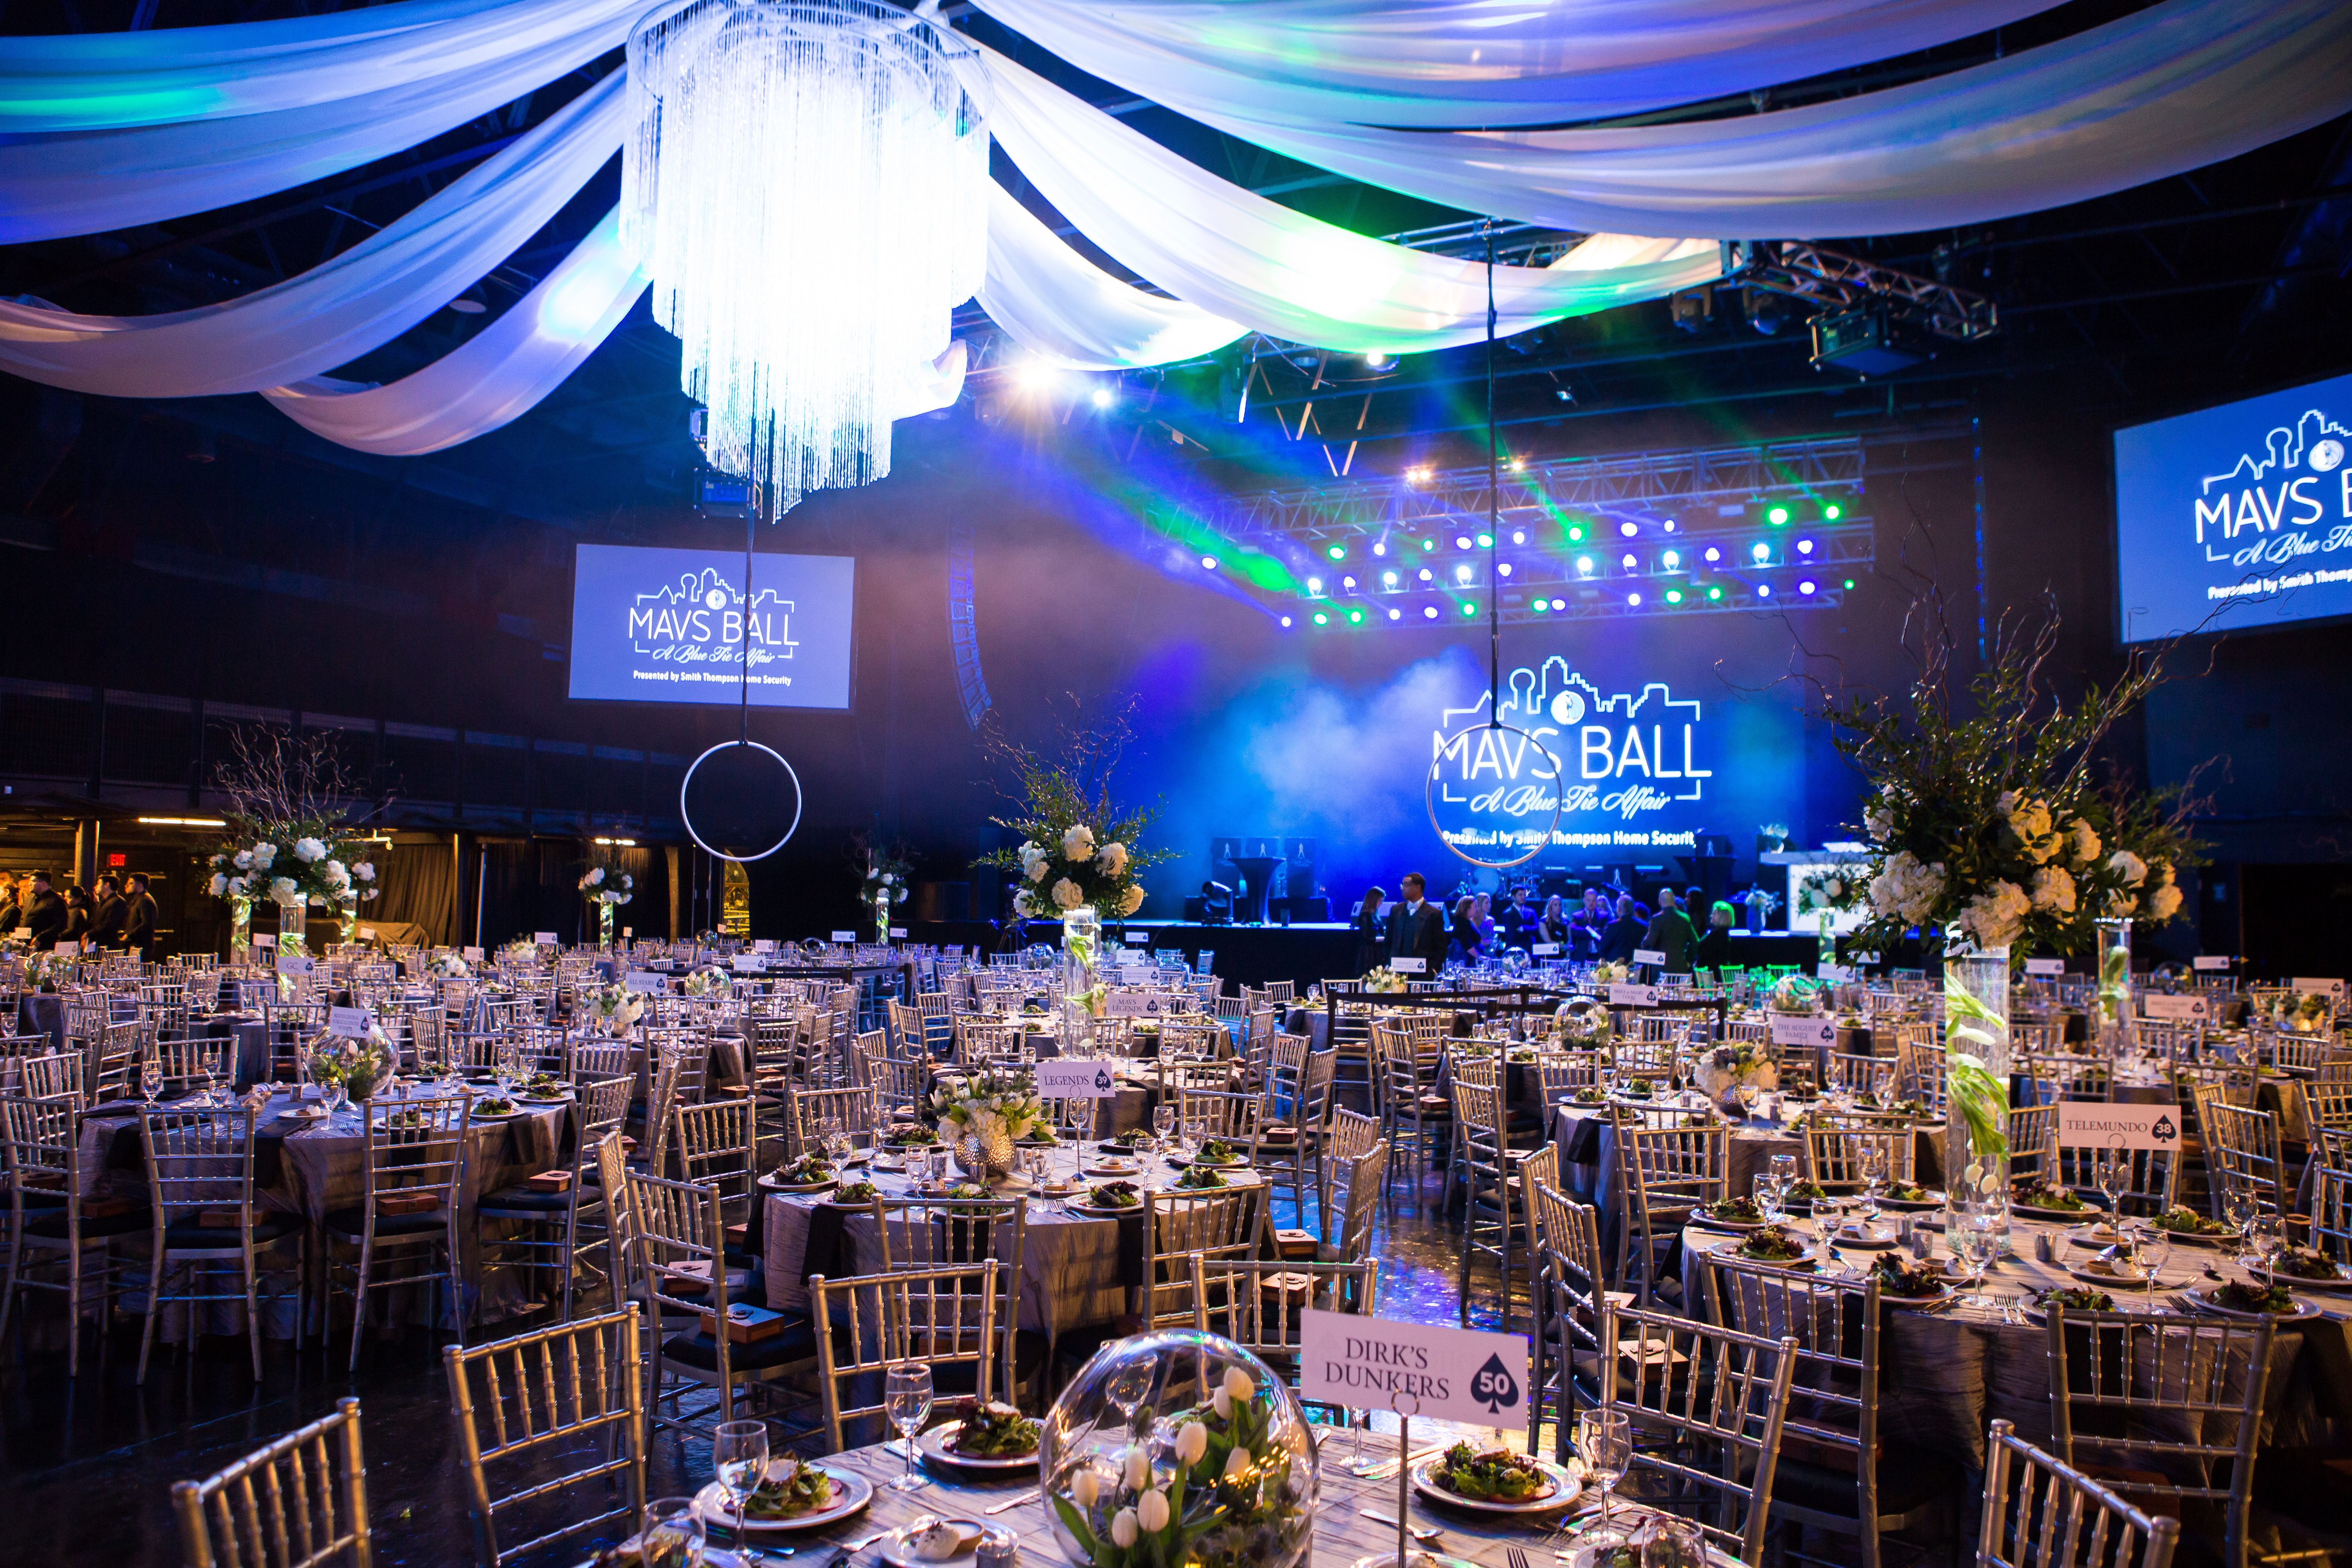 Dallas Mavericks Foundation 2017 Gala - The Bomb Factory and Factory Ballroom